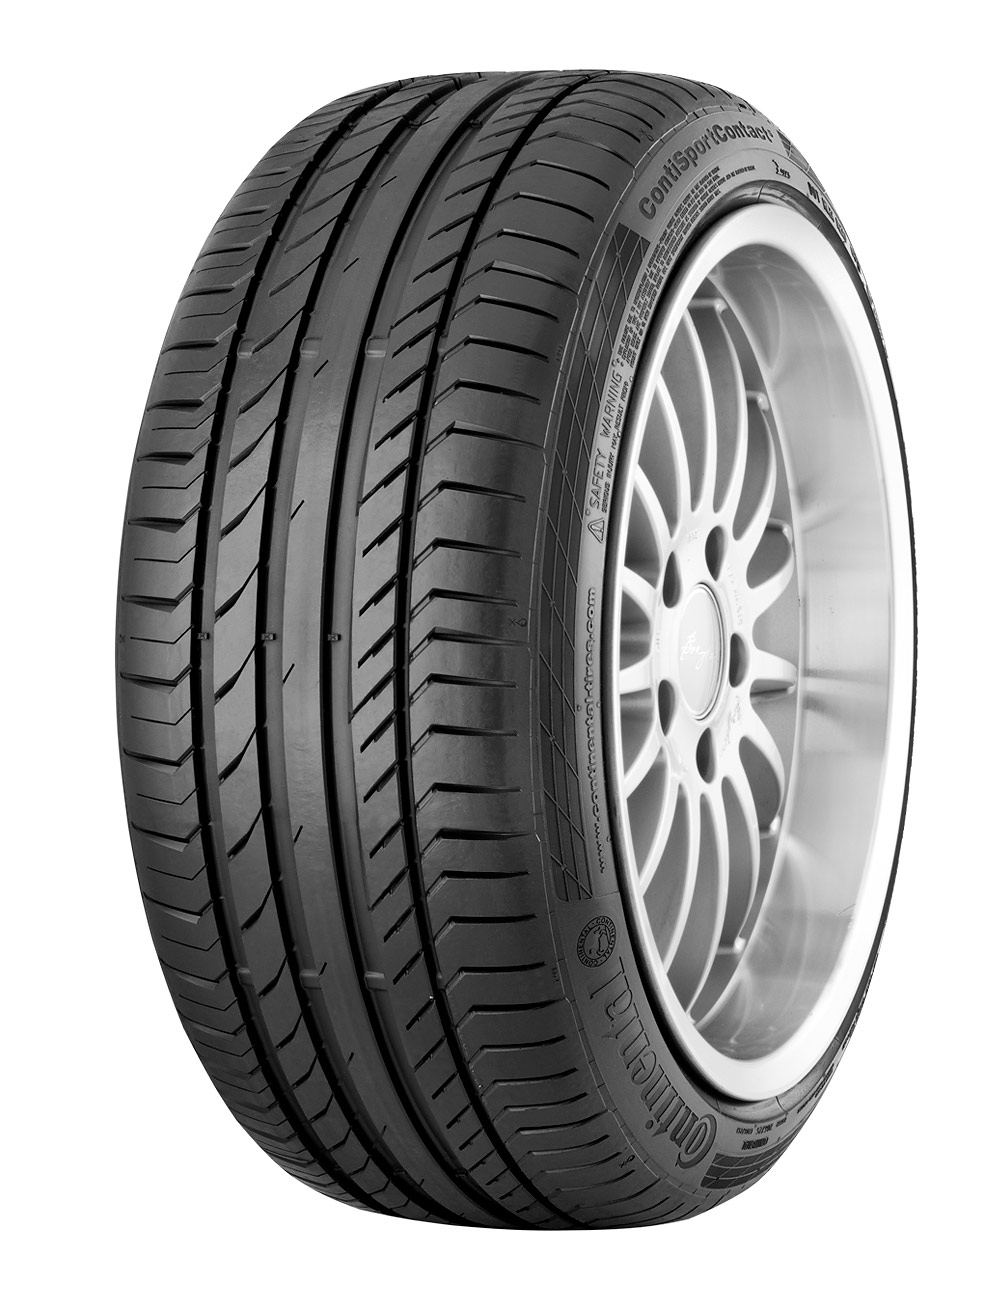 Anvelopa Vara CONTINENTAL SPORT CONTACT 5 SUV RUN FLAT 275/40R20 106W